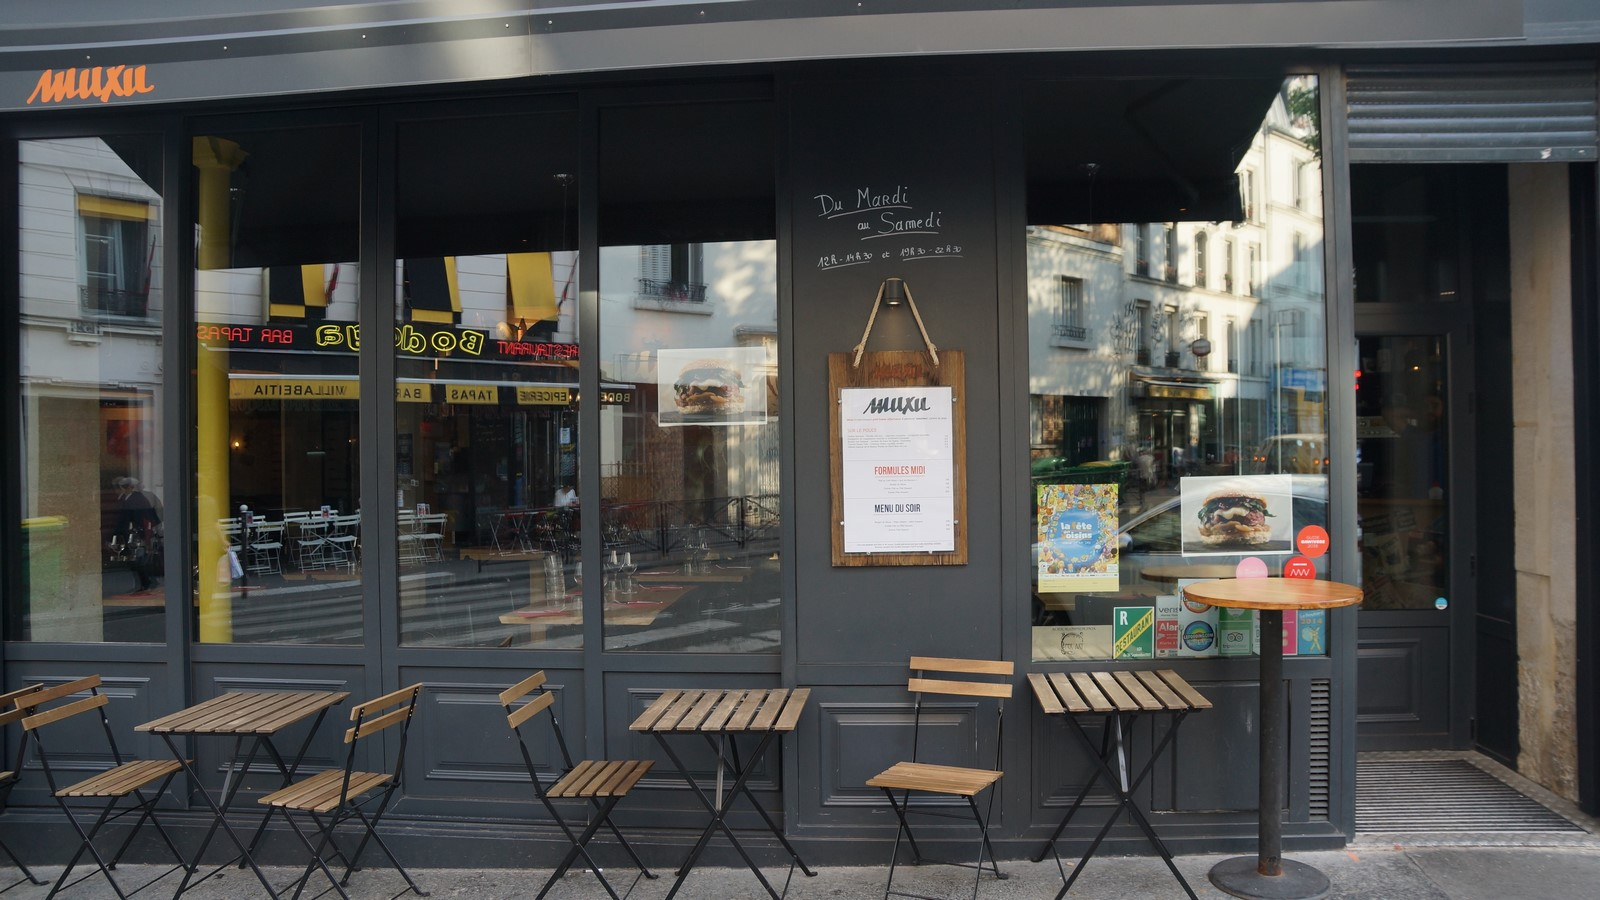 [Critique Resto] Le Muxu